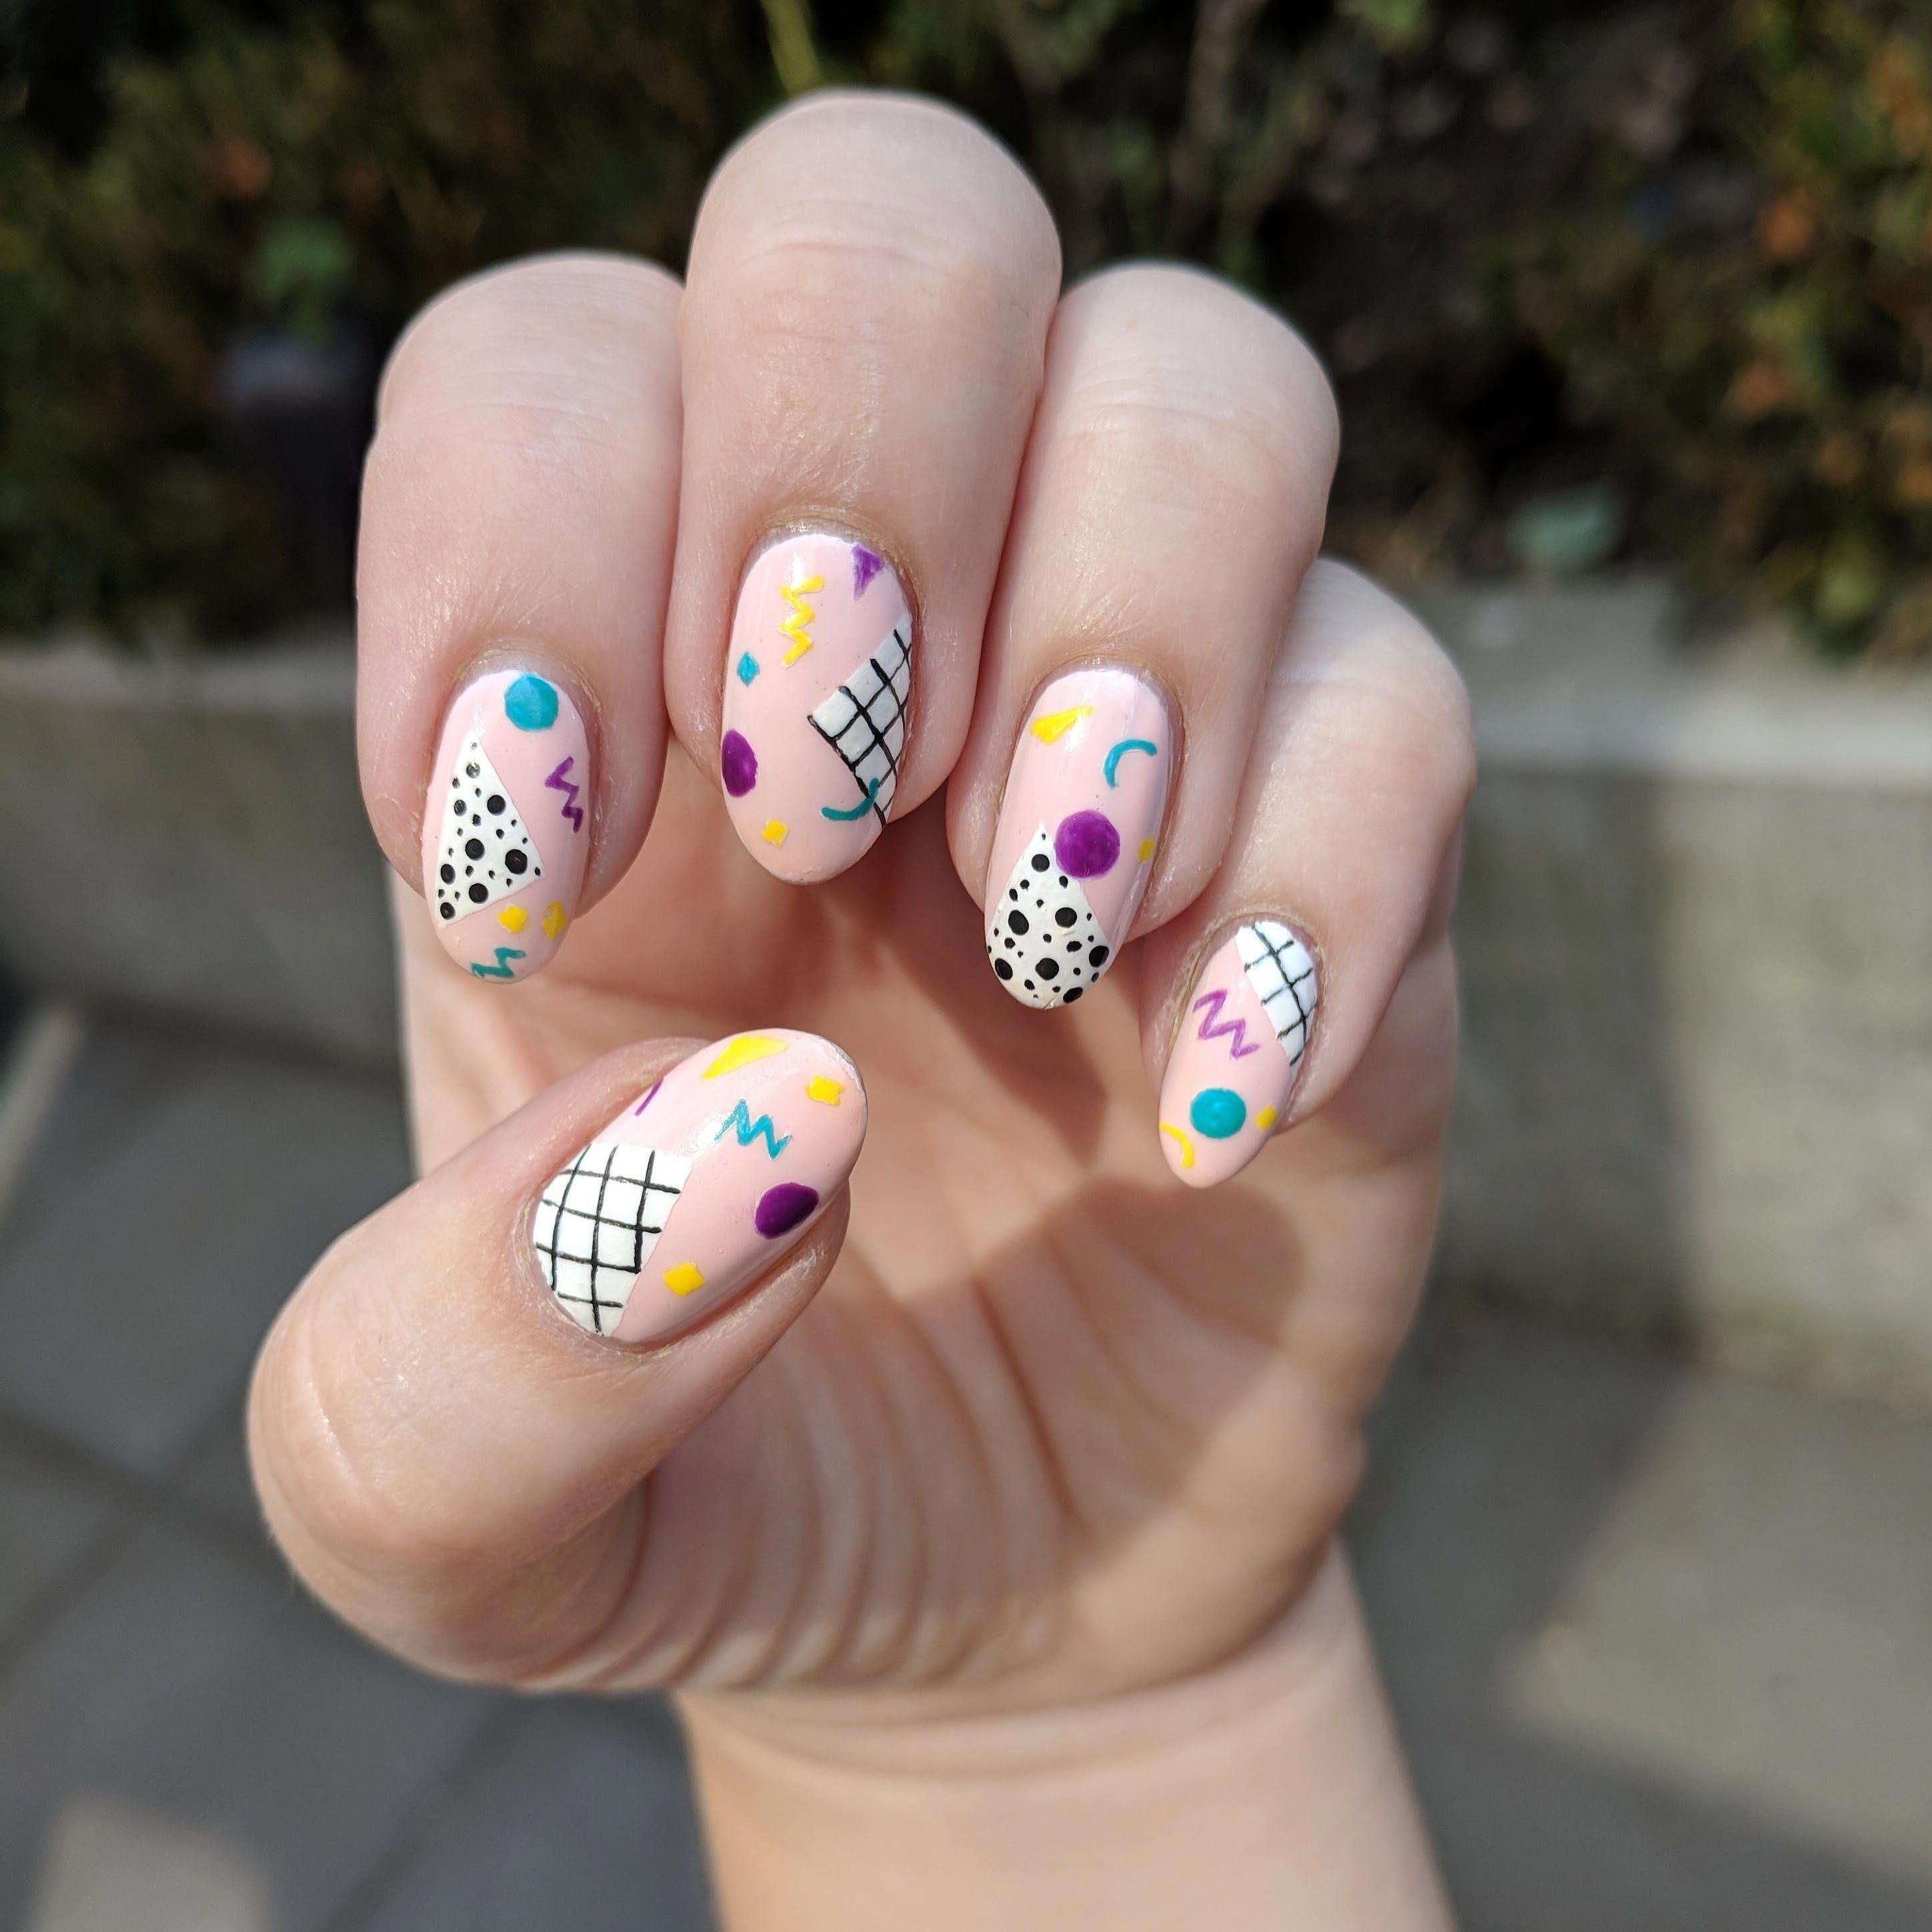 Nail Art for the End of Summer | Brit + Co